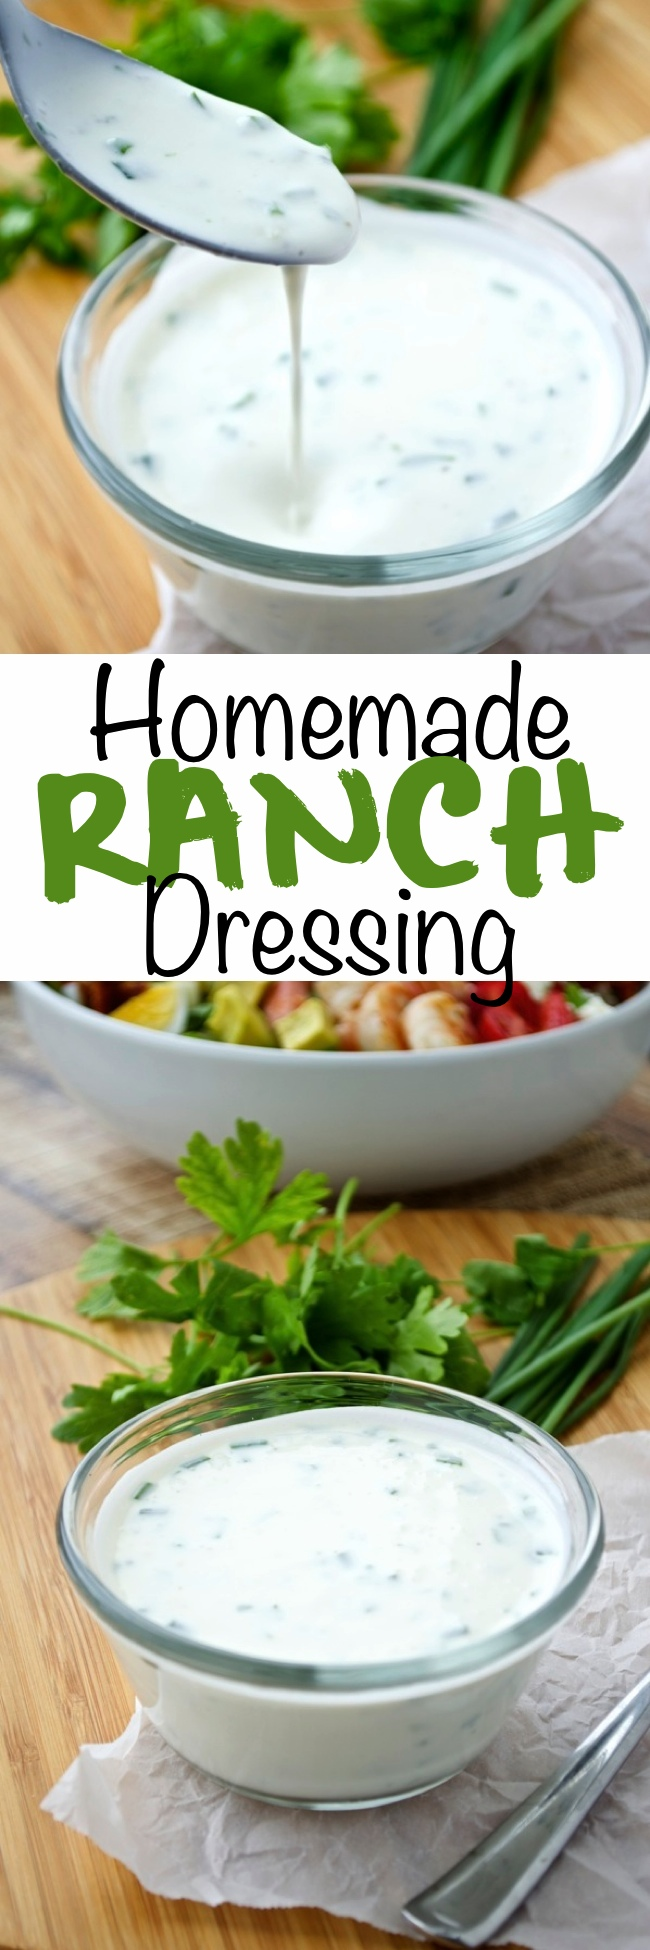 Homemade Ranch Dressing Pin